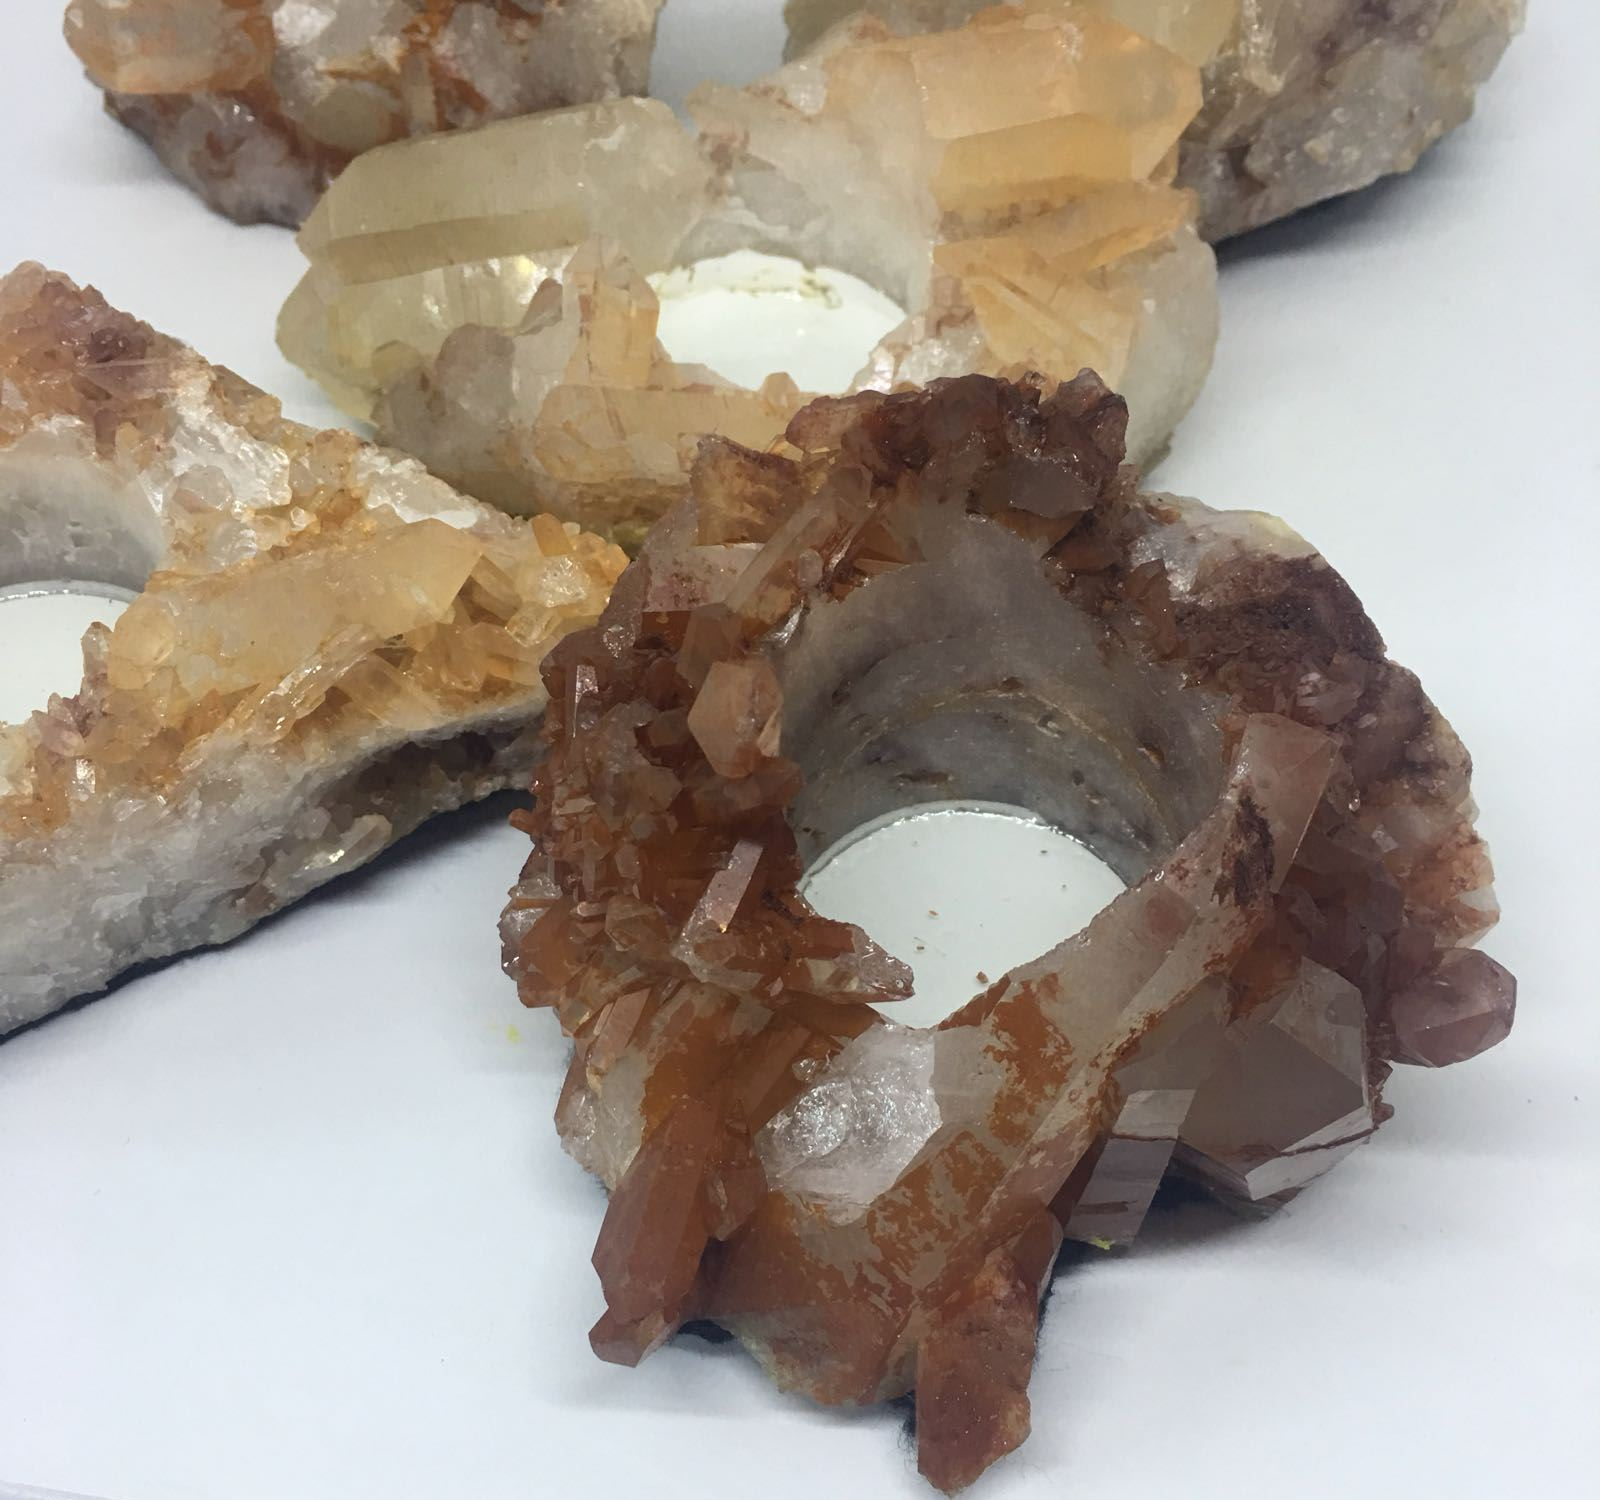 Stones from Uruguay - Tangerine Raw Quartz  Crystal Cluster Candle Holder